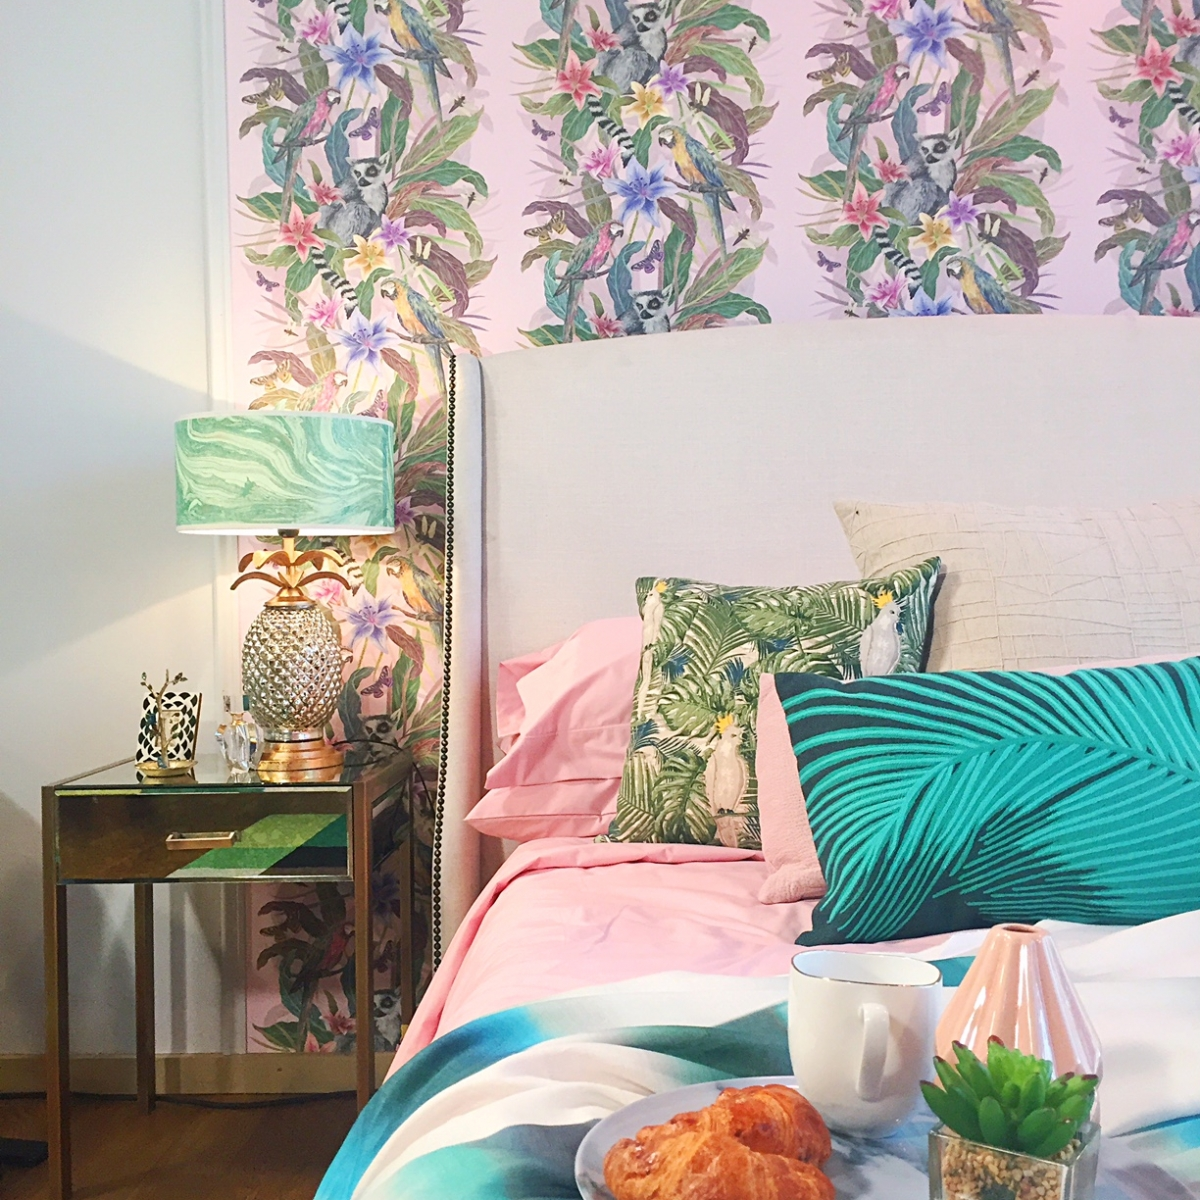 Bedroom Ideas: Trend: How To Design A Tropical Bedroom